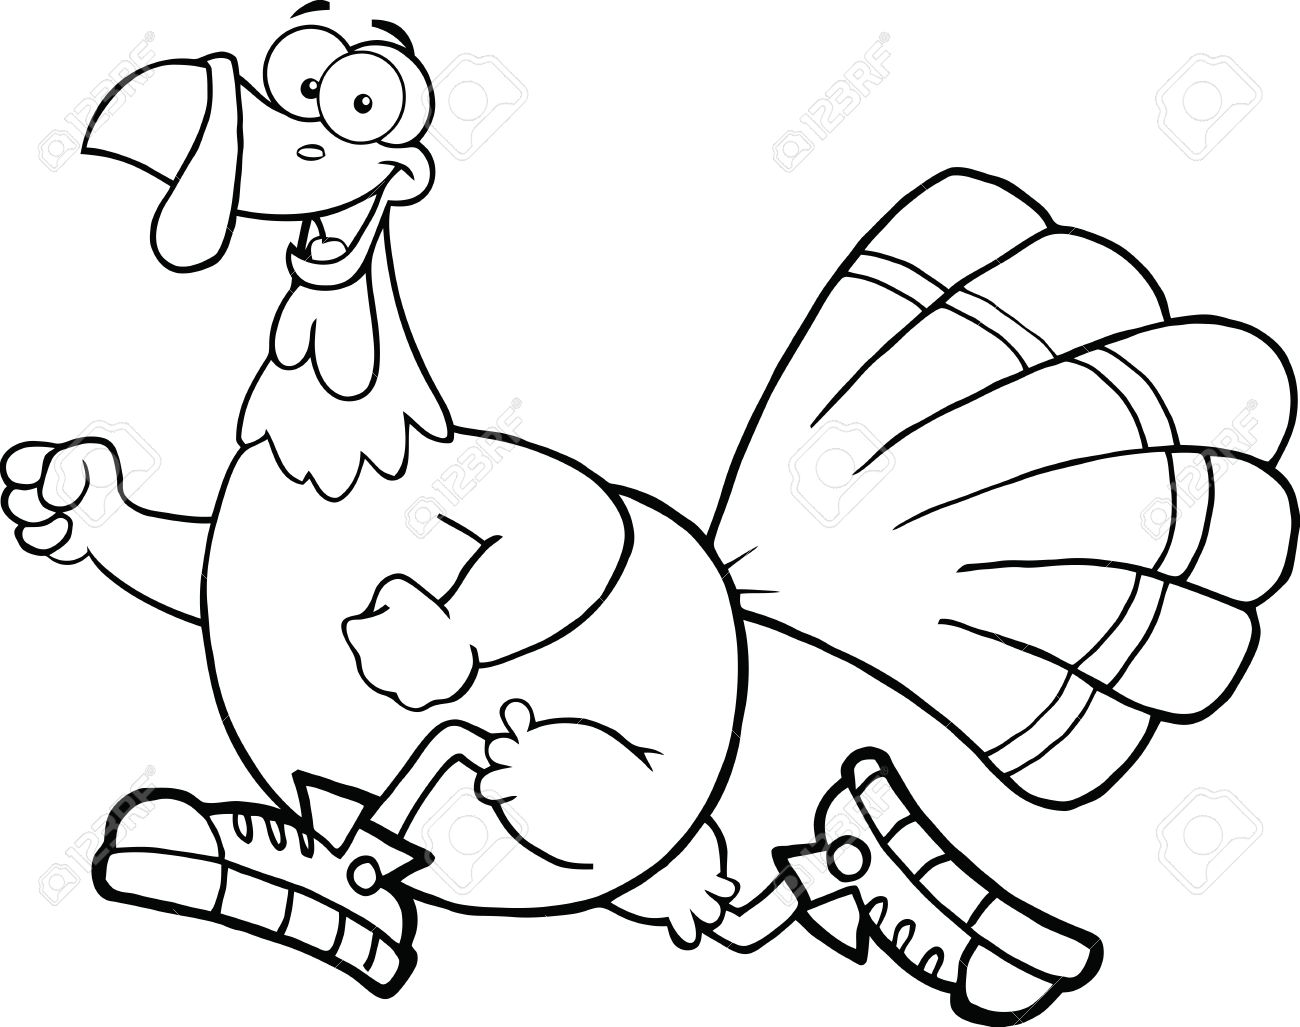 clip art turkey images u0026 stock pictures royalty free clip art